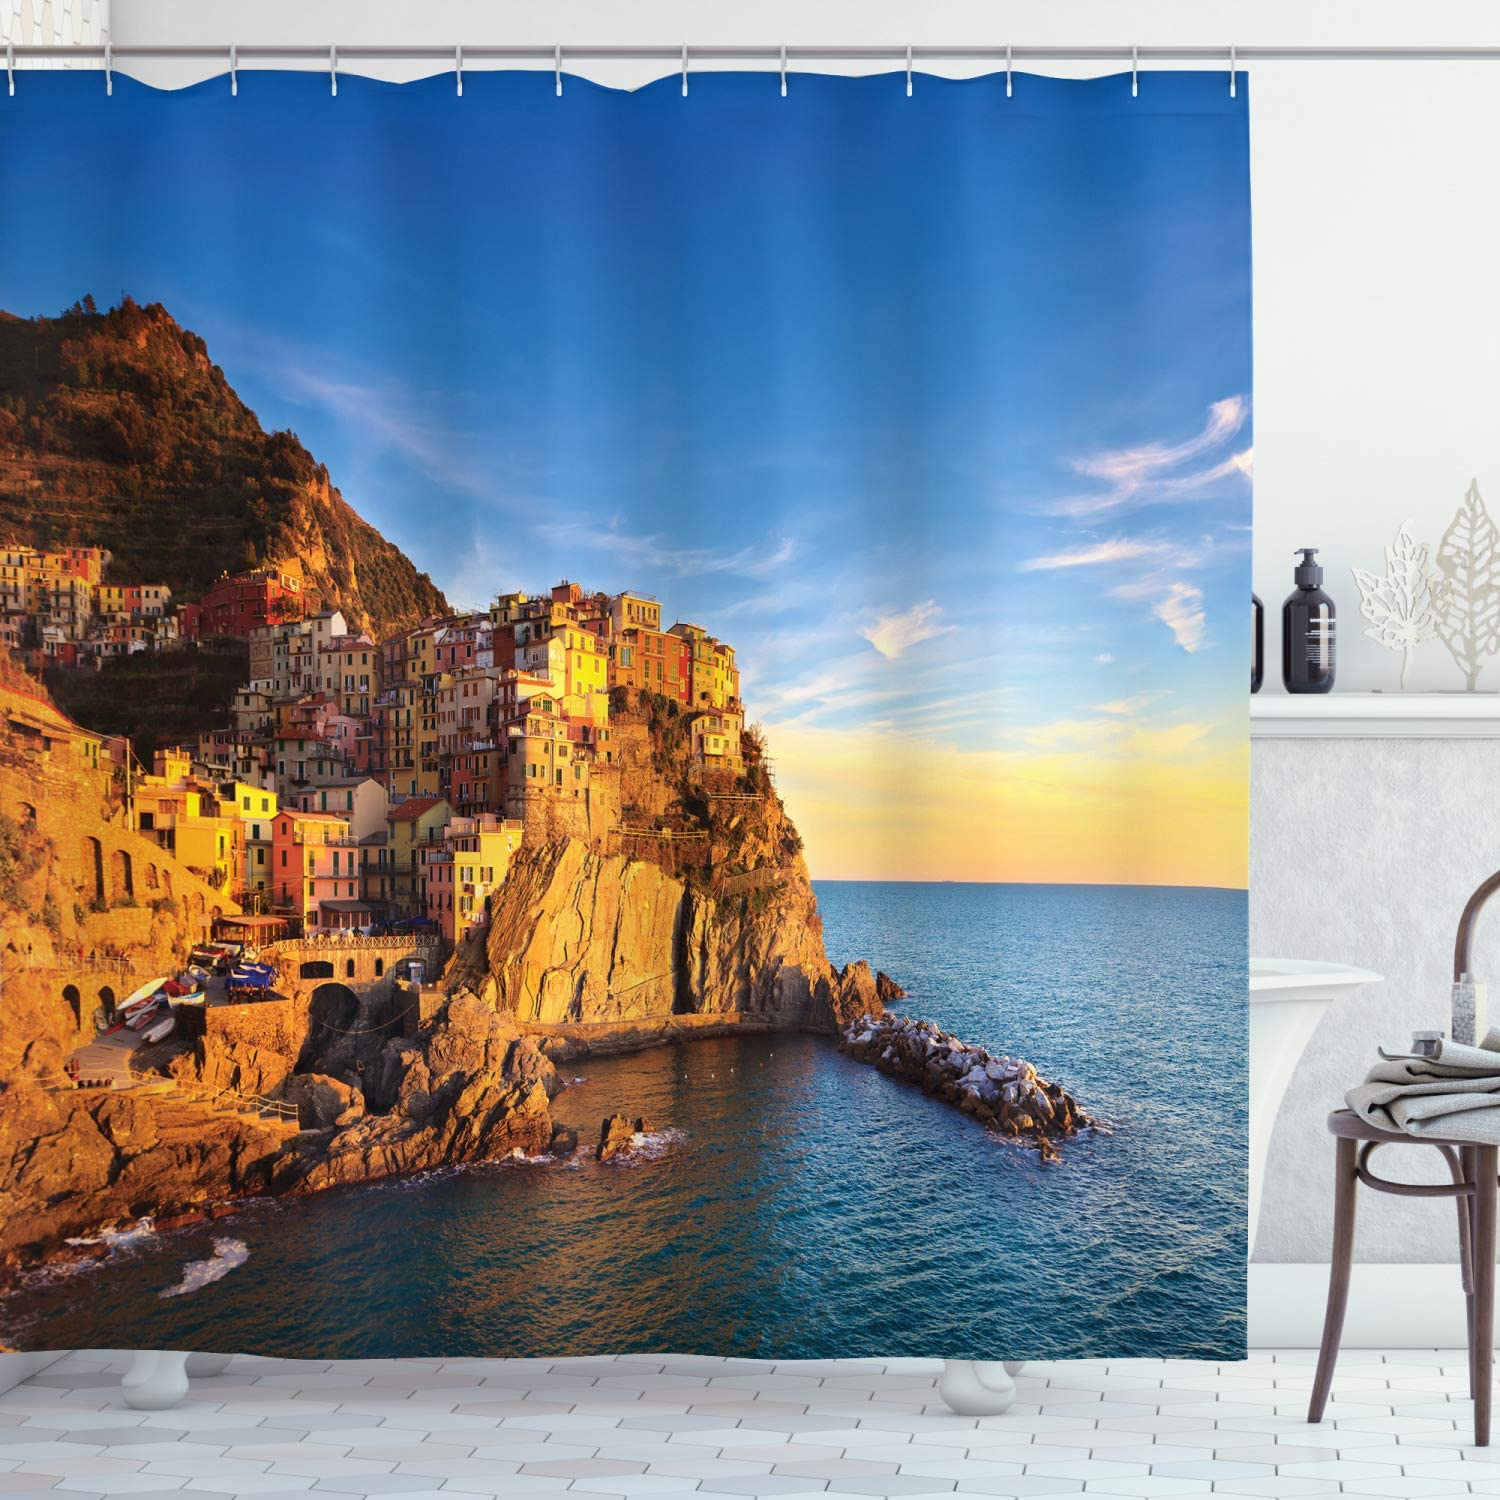 Fabric Bathroom Decor Set with Hooks Blue Cream Italian Mediterranean Village on Cliffs in Five Lands Seascape Panorama Ambesonne Scenery House Decor Shower Curtain by 70 Inches